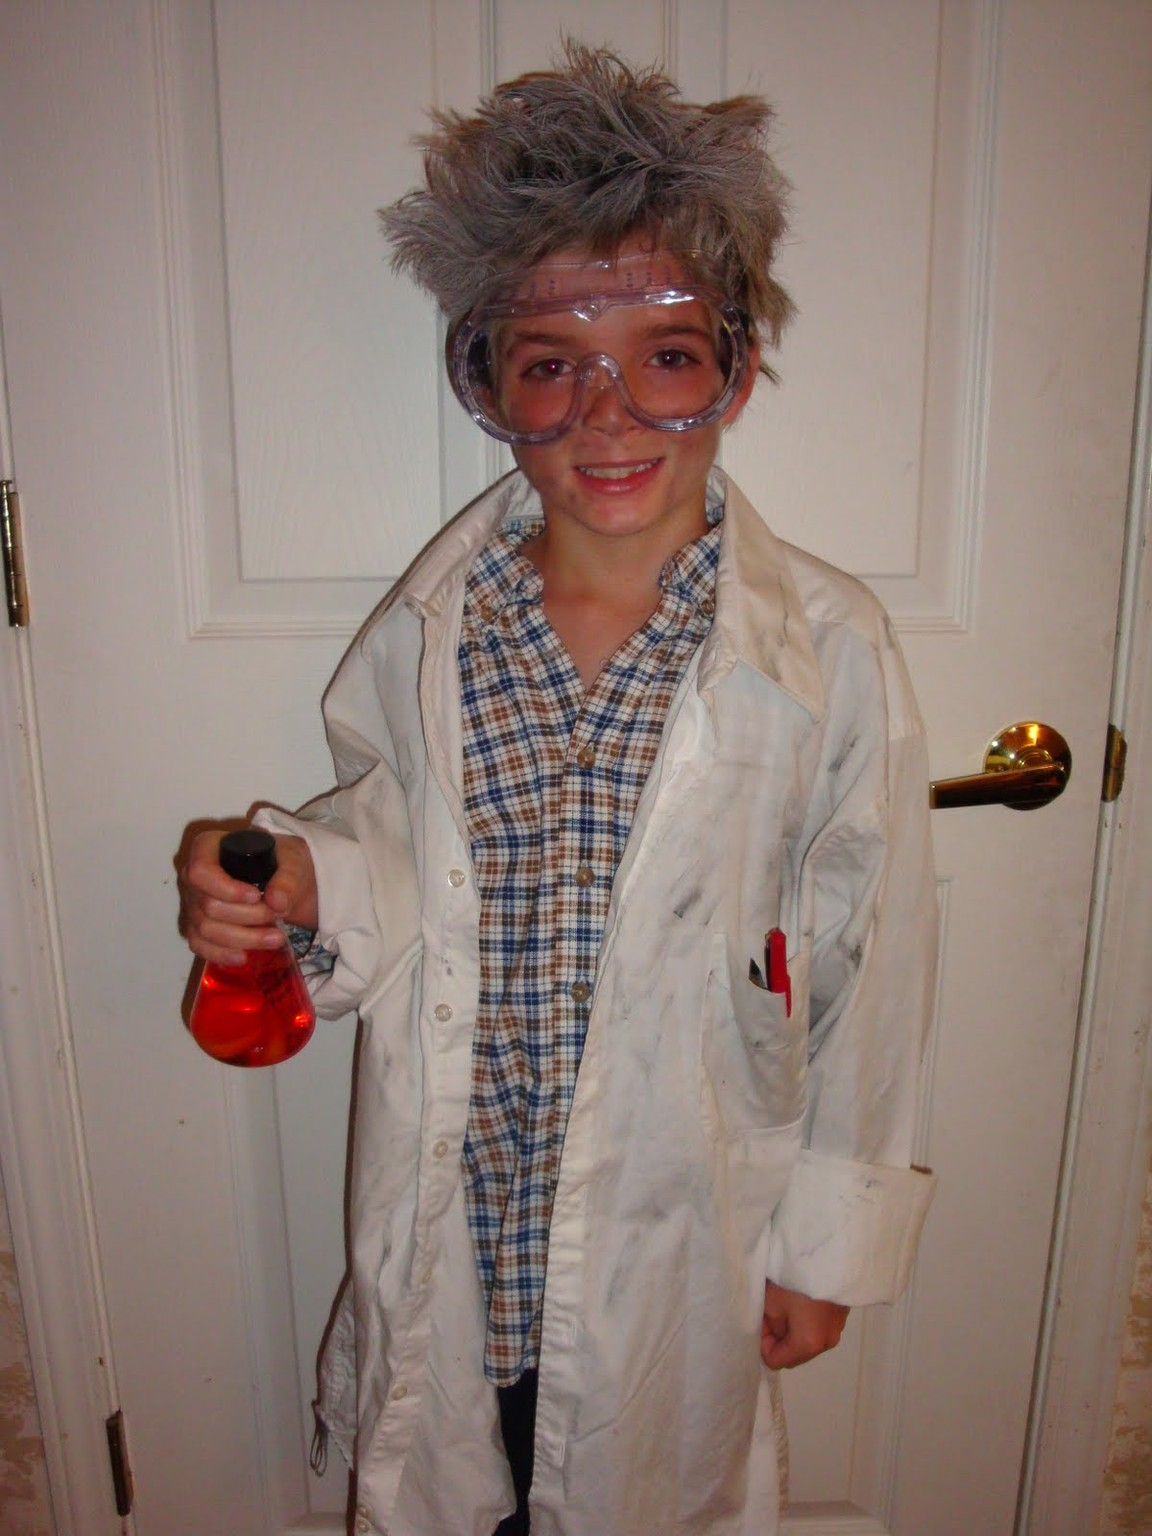 costume crafty: how to make a mad scientist halloween costume